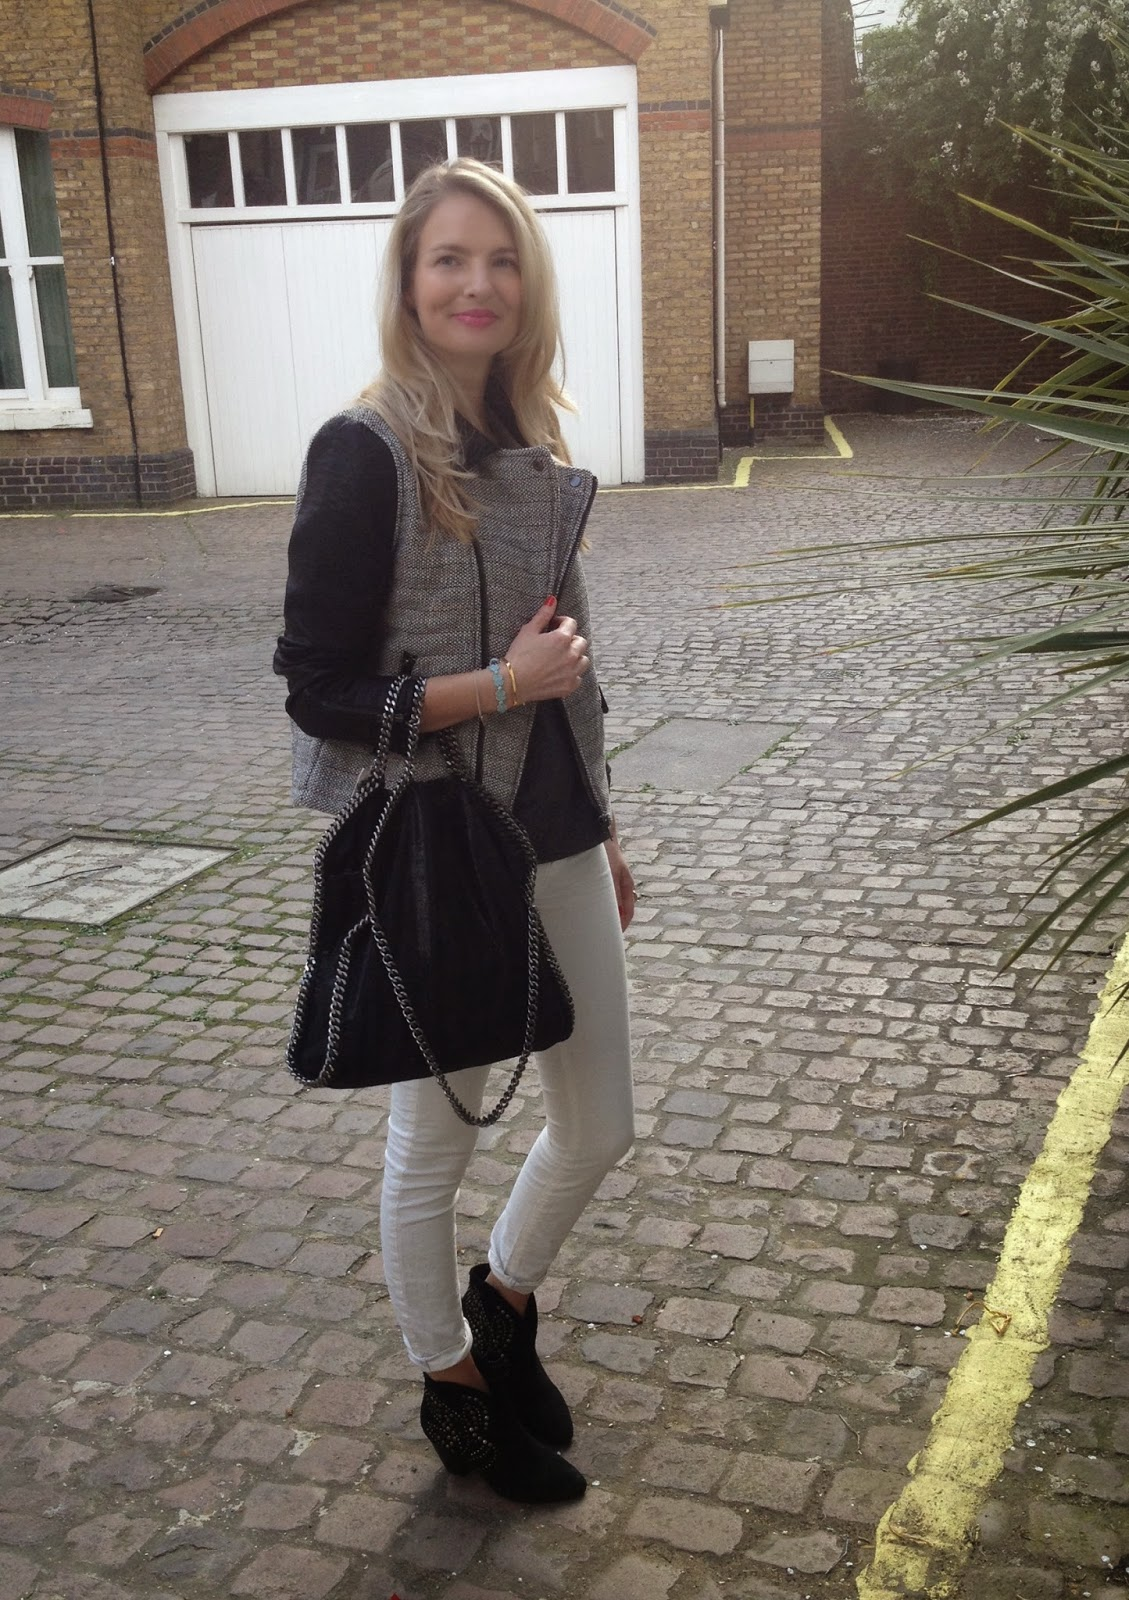 ootd, wiwt, asos look book, asos sale, london street style